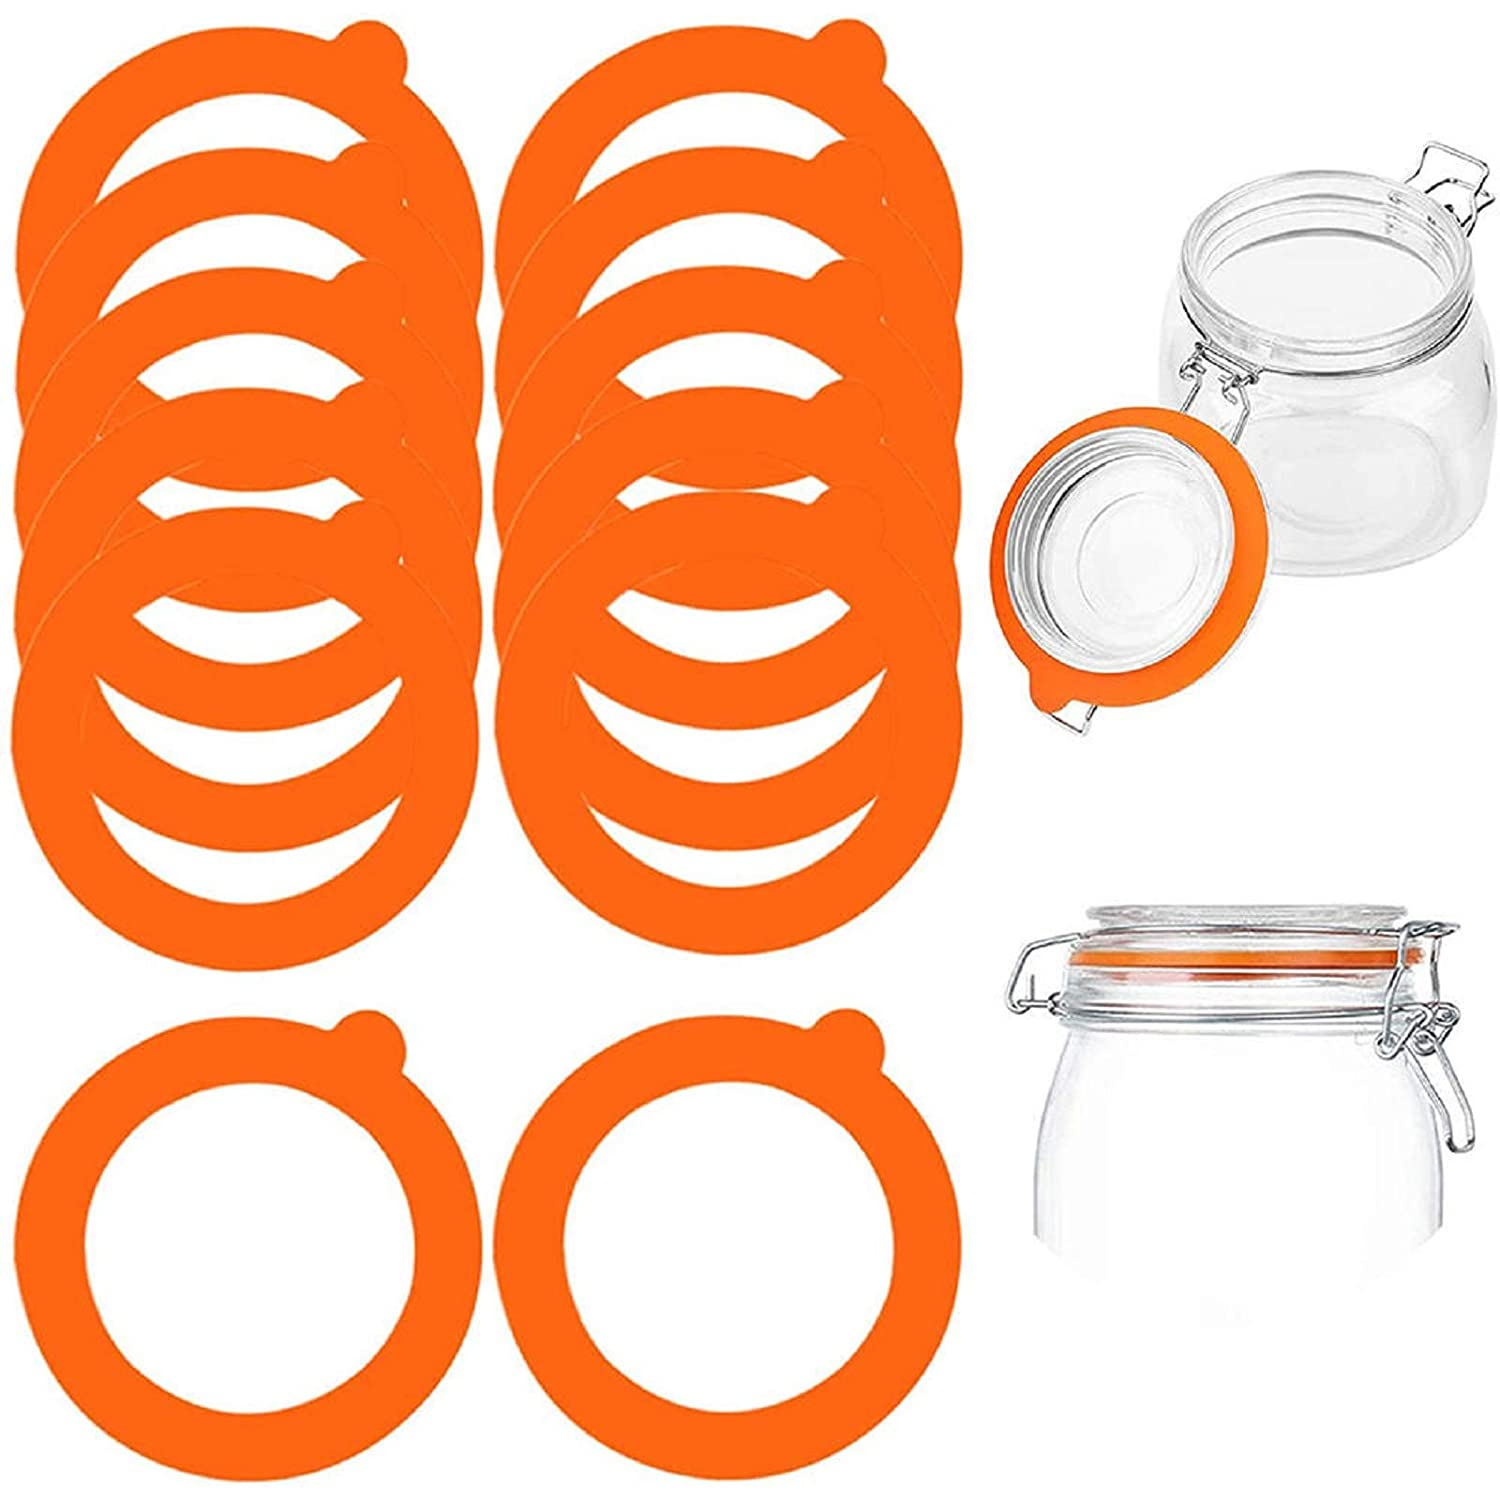 MIPAHI 12-Piece Silicone Replacement Gasket, Leak-Proof Mason Jar Lid Rubber Sealing Ring, Reusable Rubber O-Ring, for Refrigerator, Food Storage Rooms, Beverages, Fermentation Lids